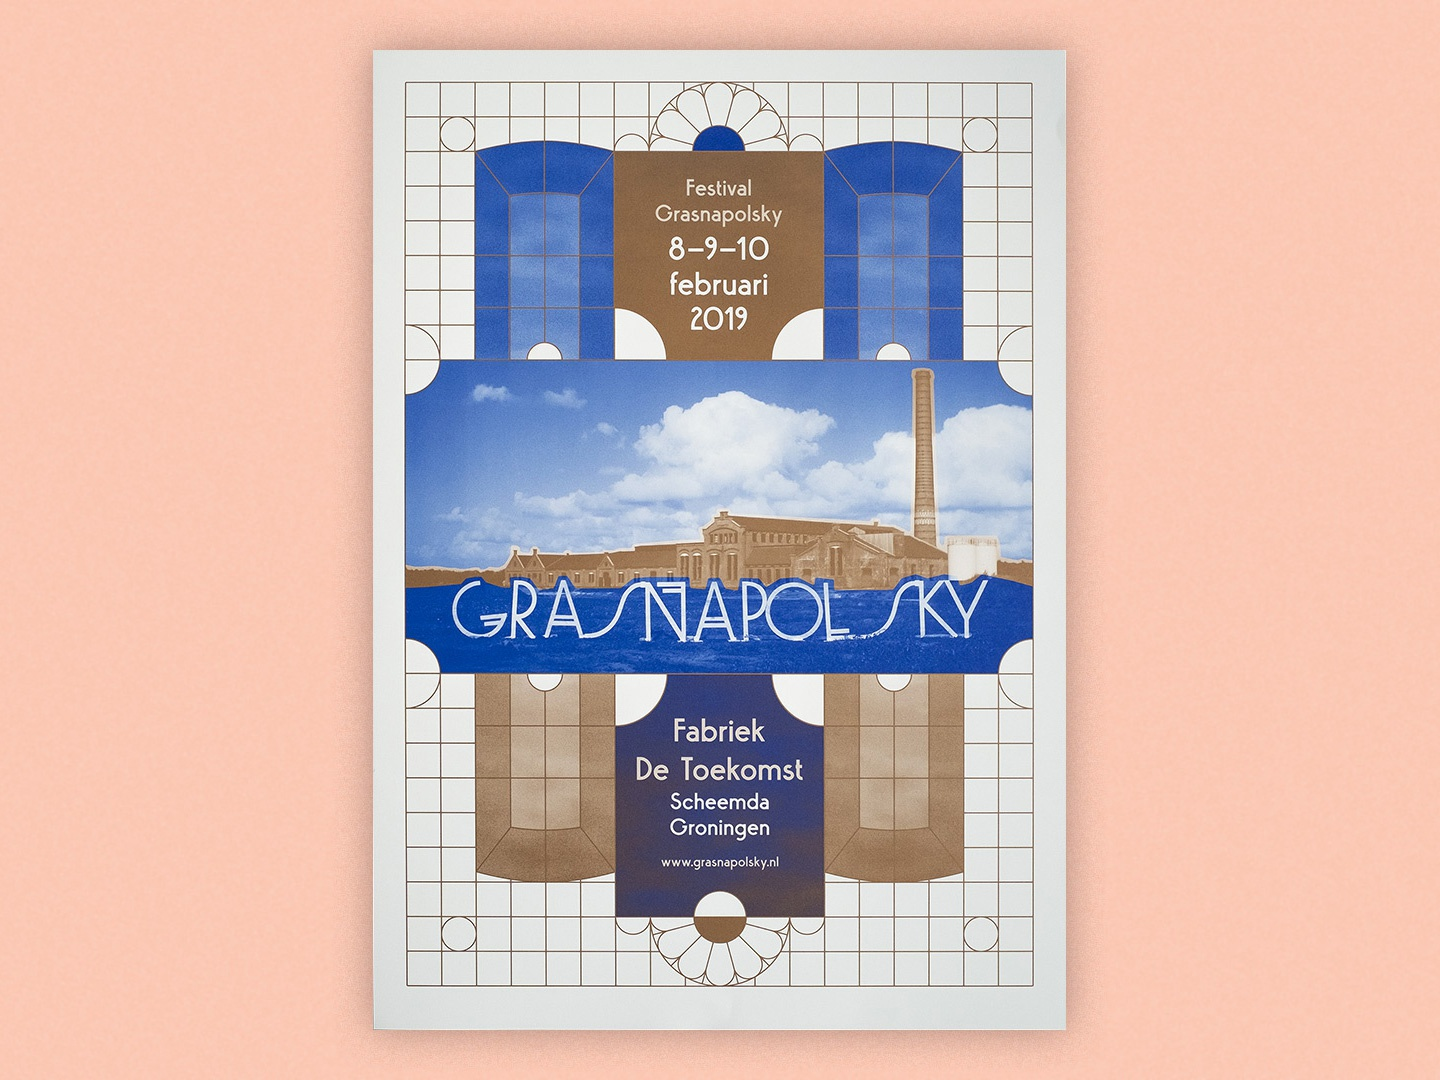 Grasnapolsky Festival 2019 poster poster design festival factory metallic pantone pms vector logo typography design graphic design branding patterns